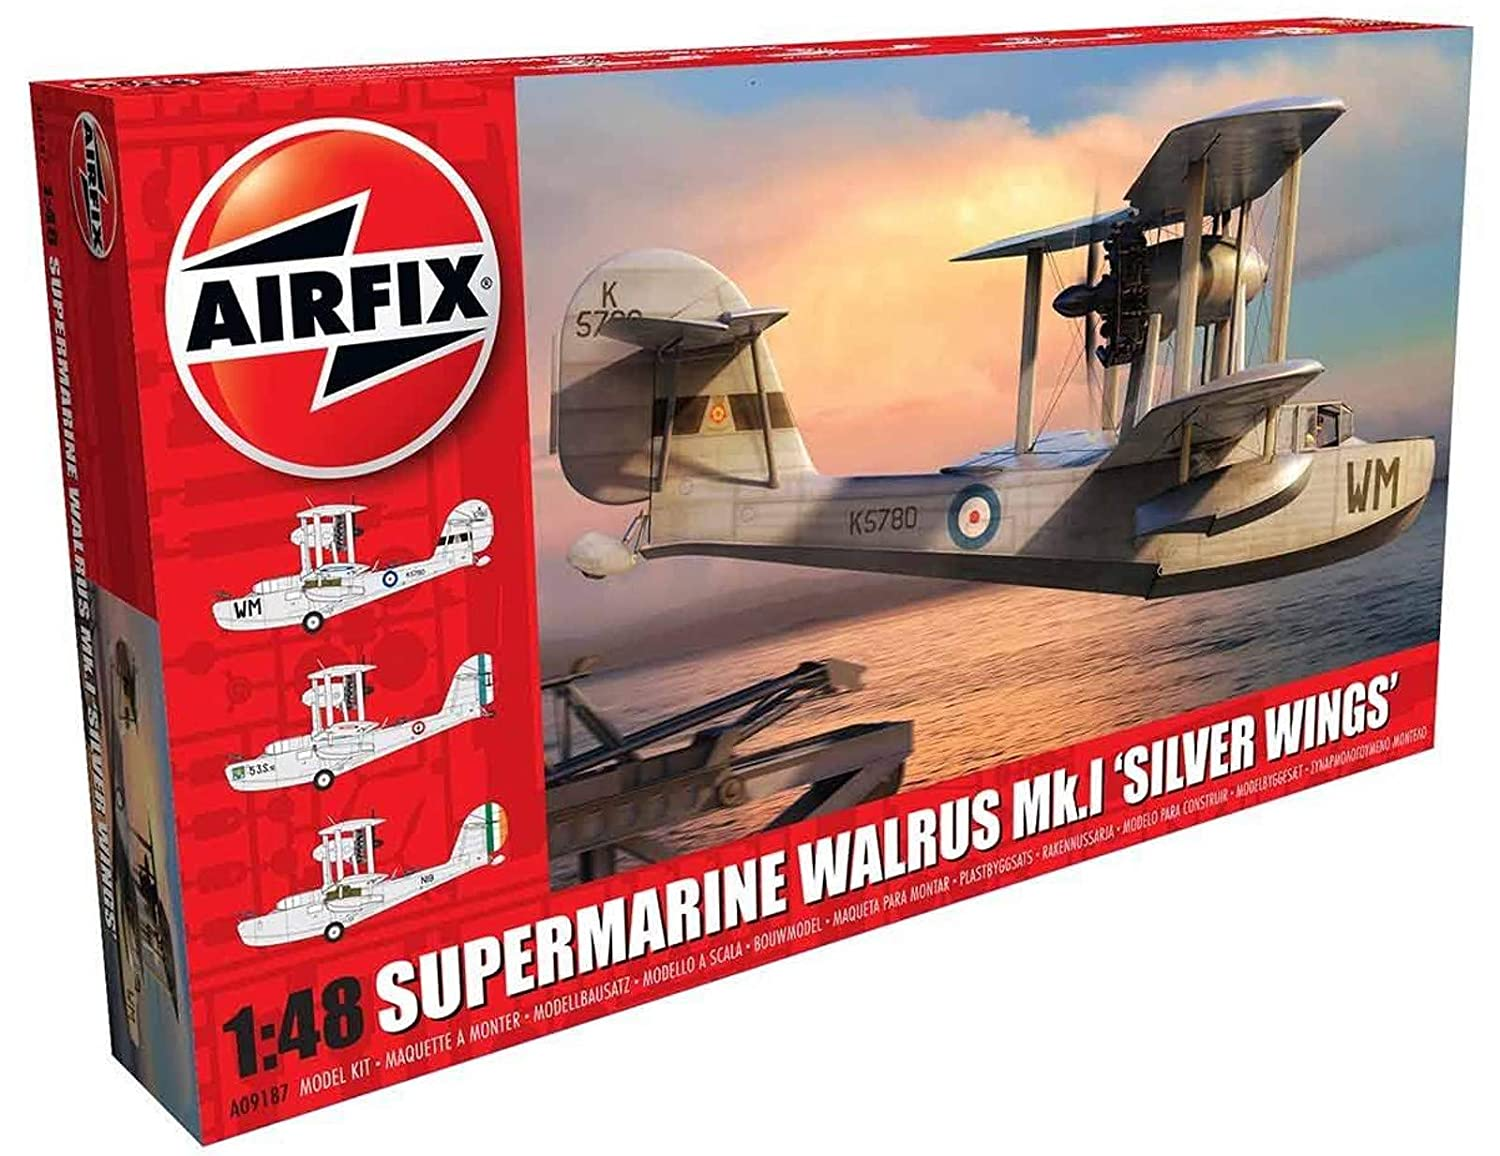 Amazon.com: Airfix Quickbuild Supermarine Walrus MK I Silver ...